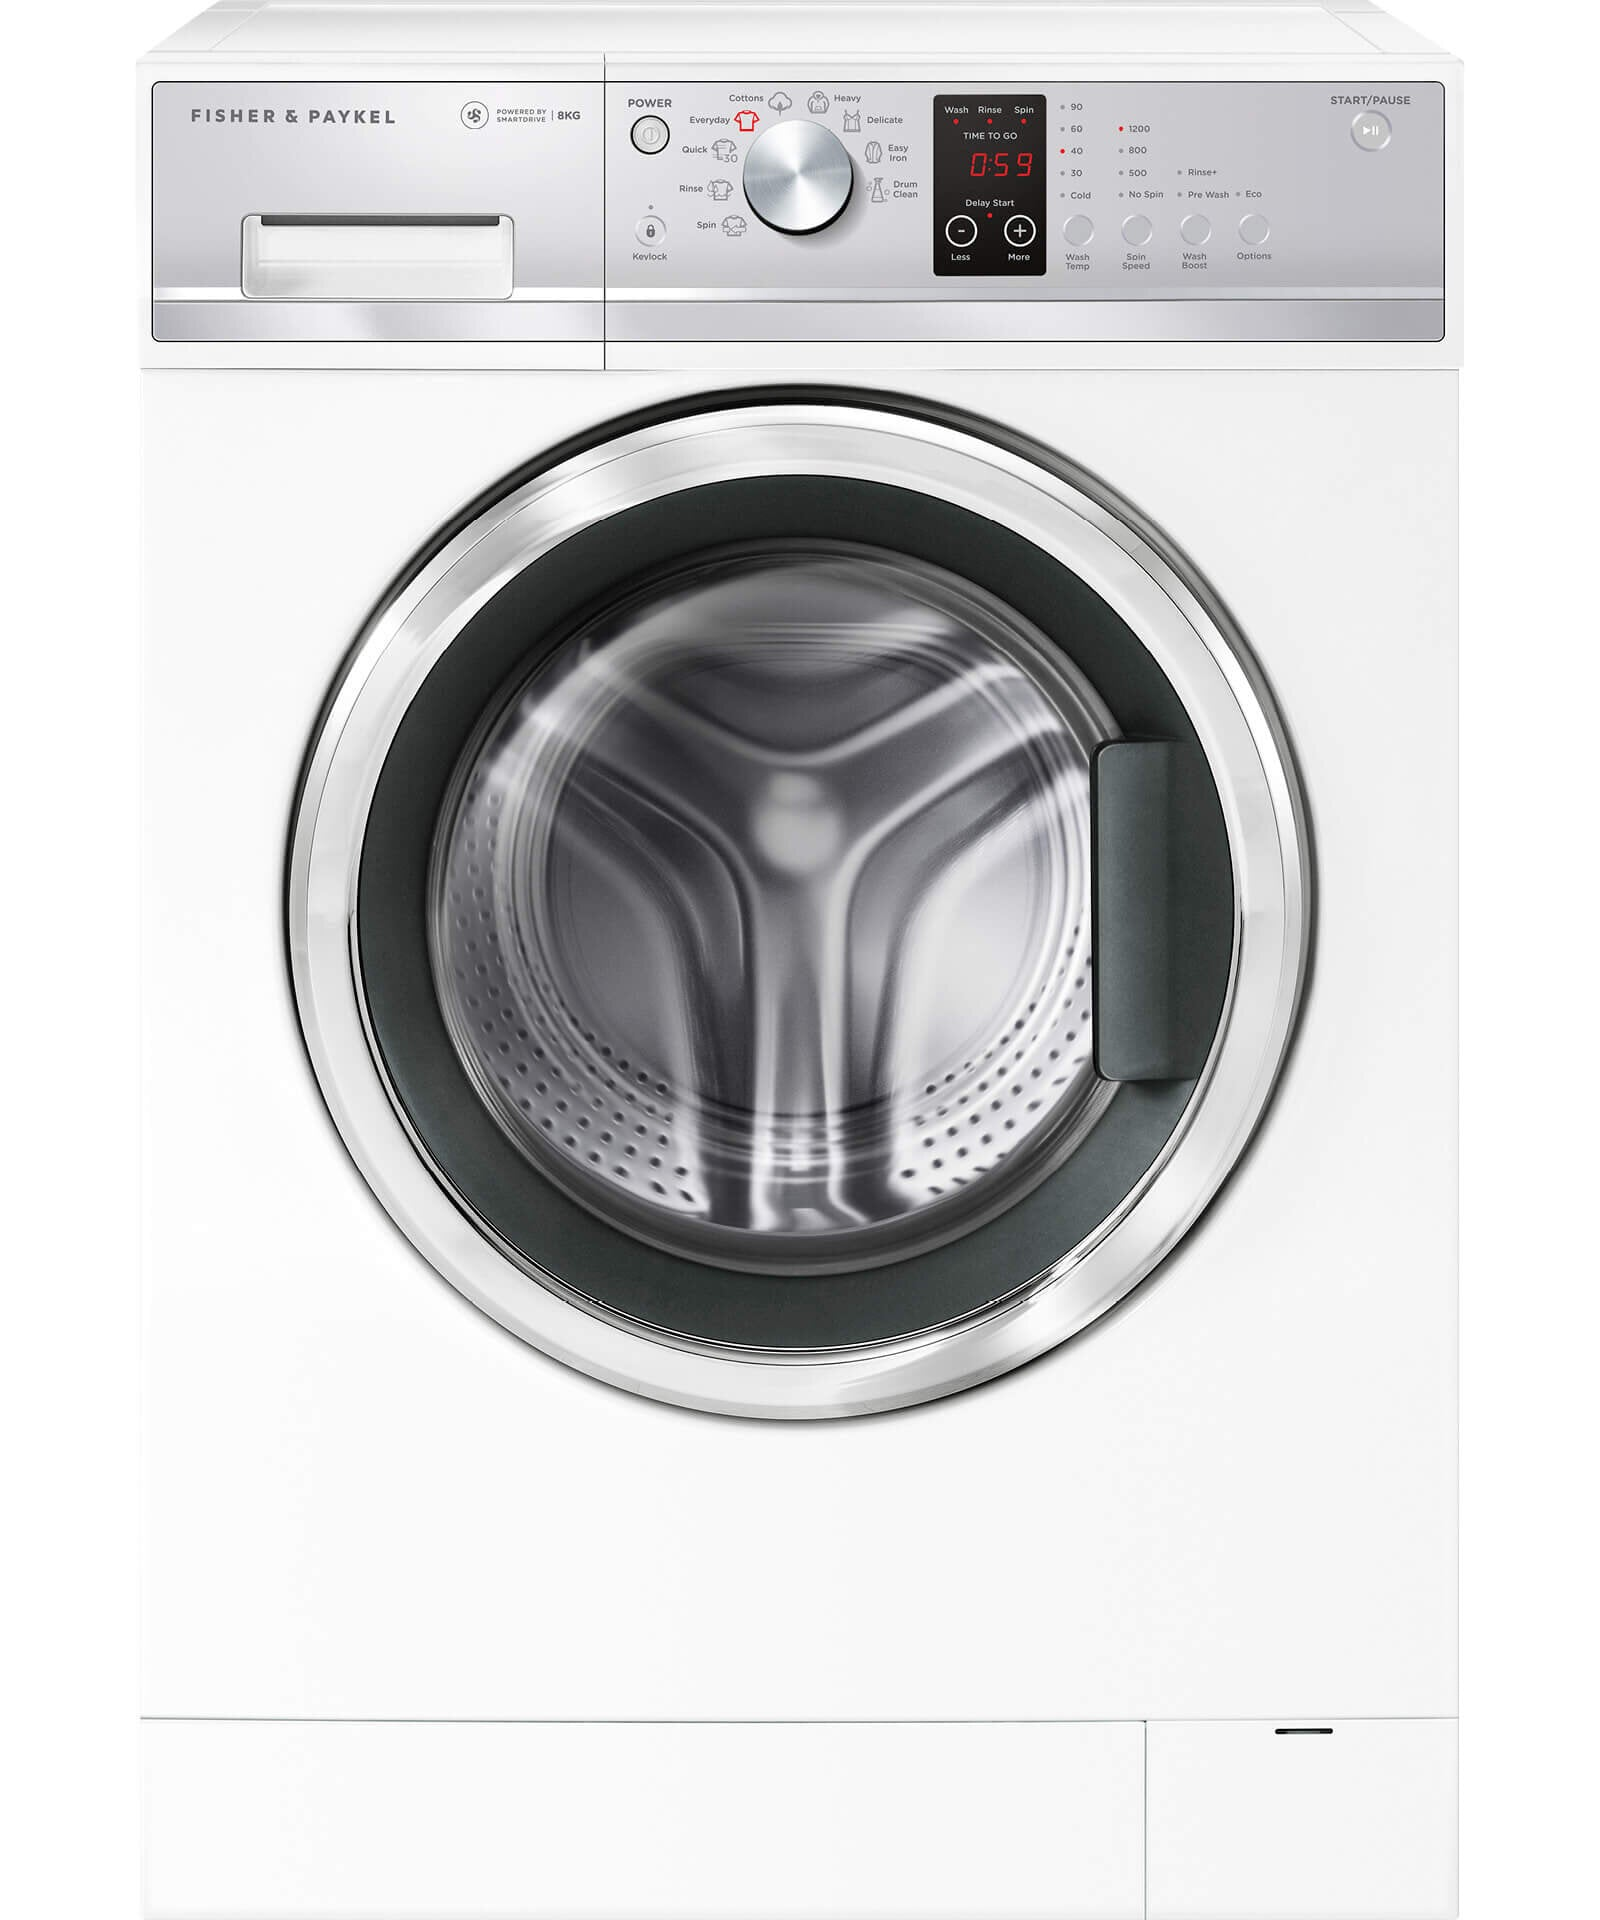 Fisher & Paykel Front Loader Washing Machine 8 kg - Brisbane Home Appliances